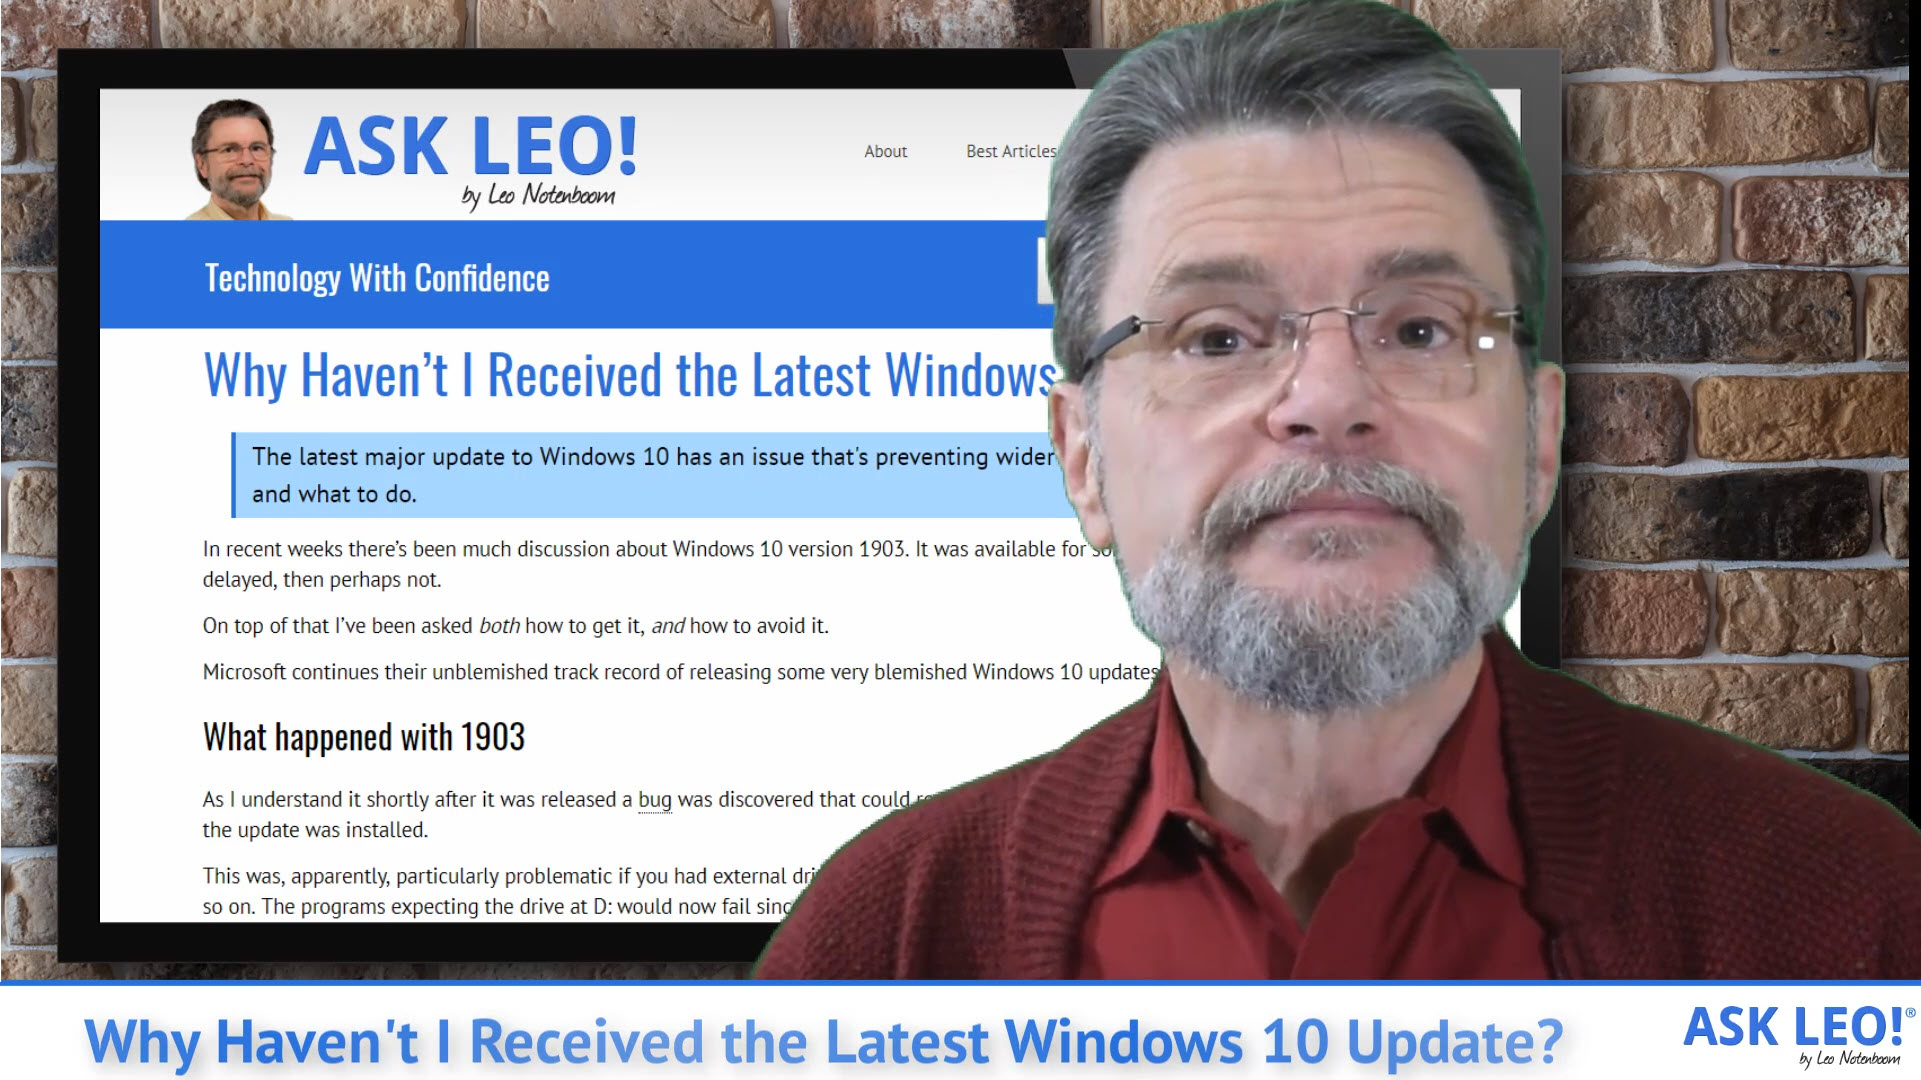 Why Haven't I Received the Latest Windows 10 Update? - Ask Leo!